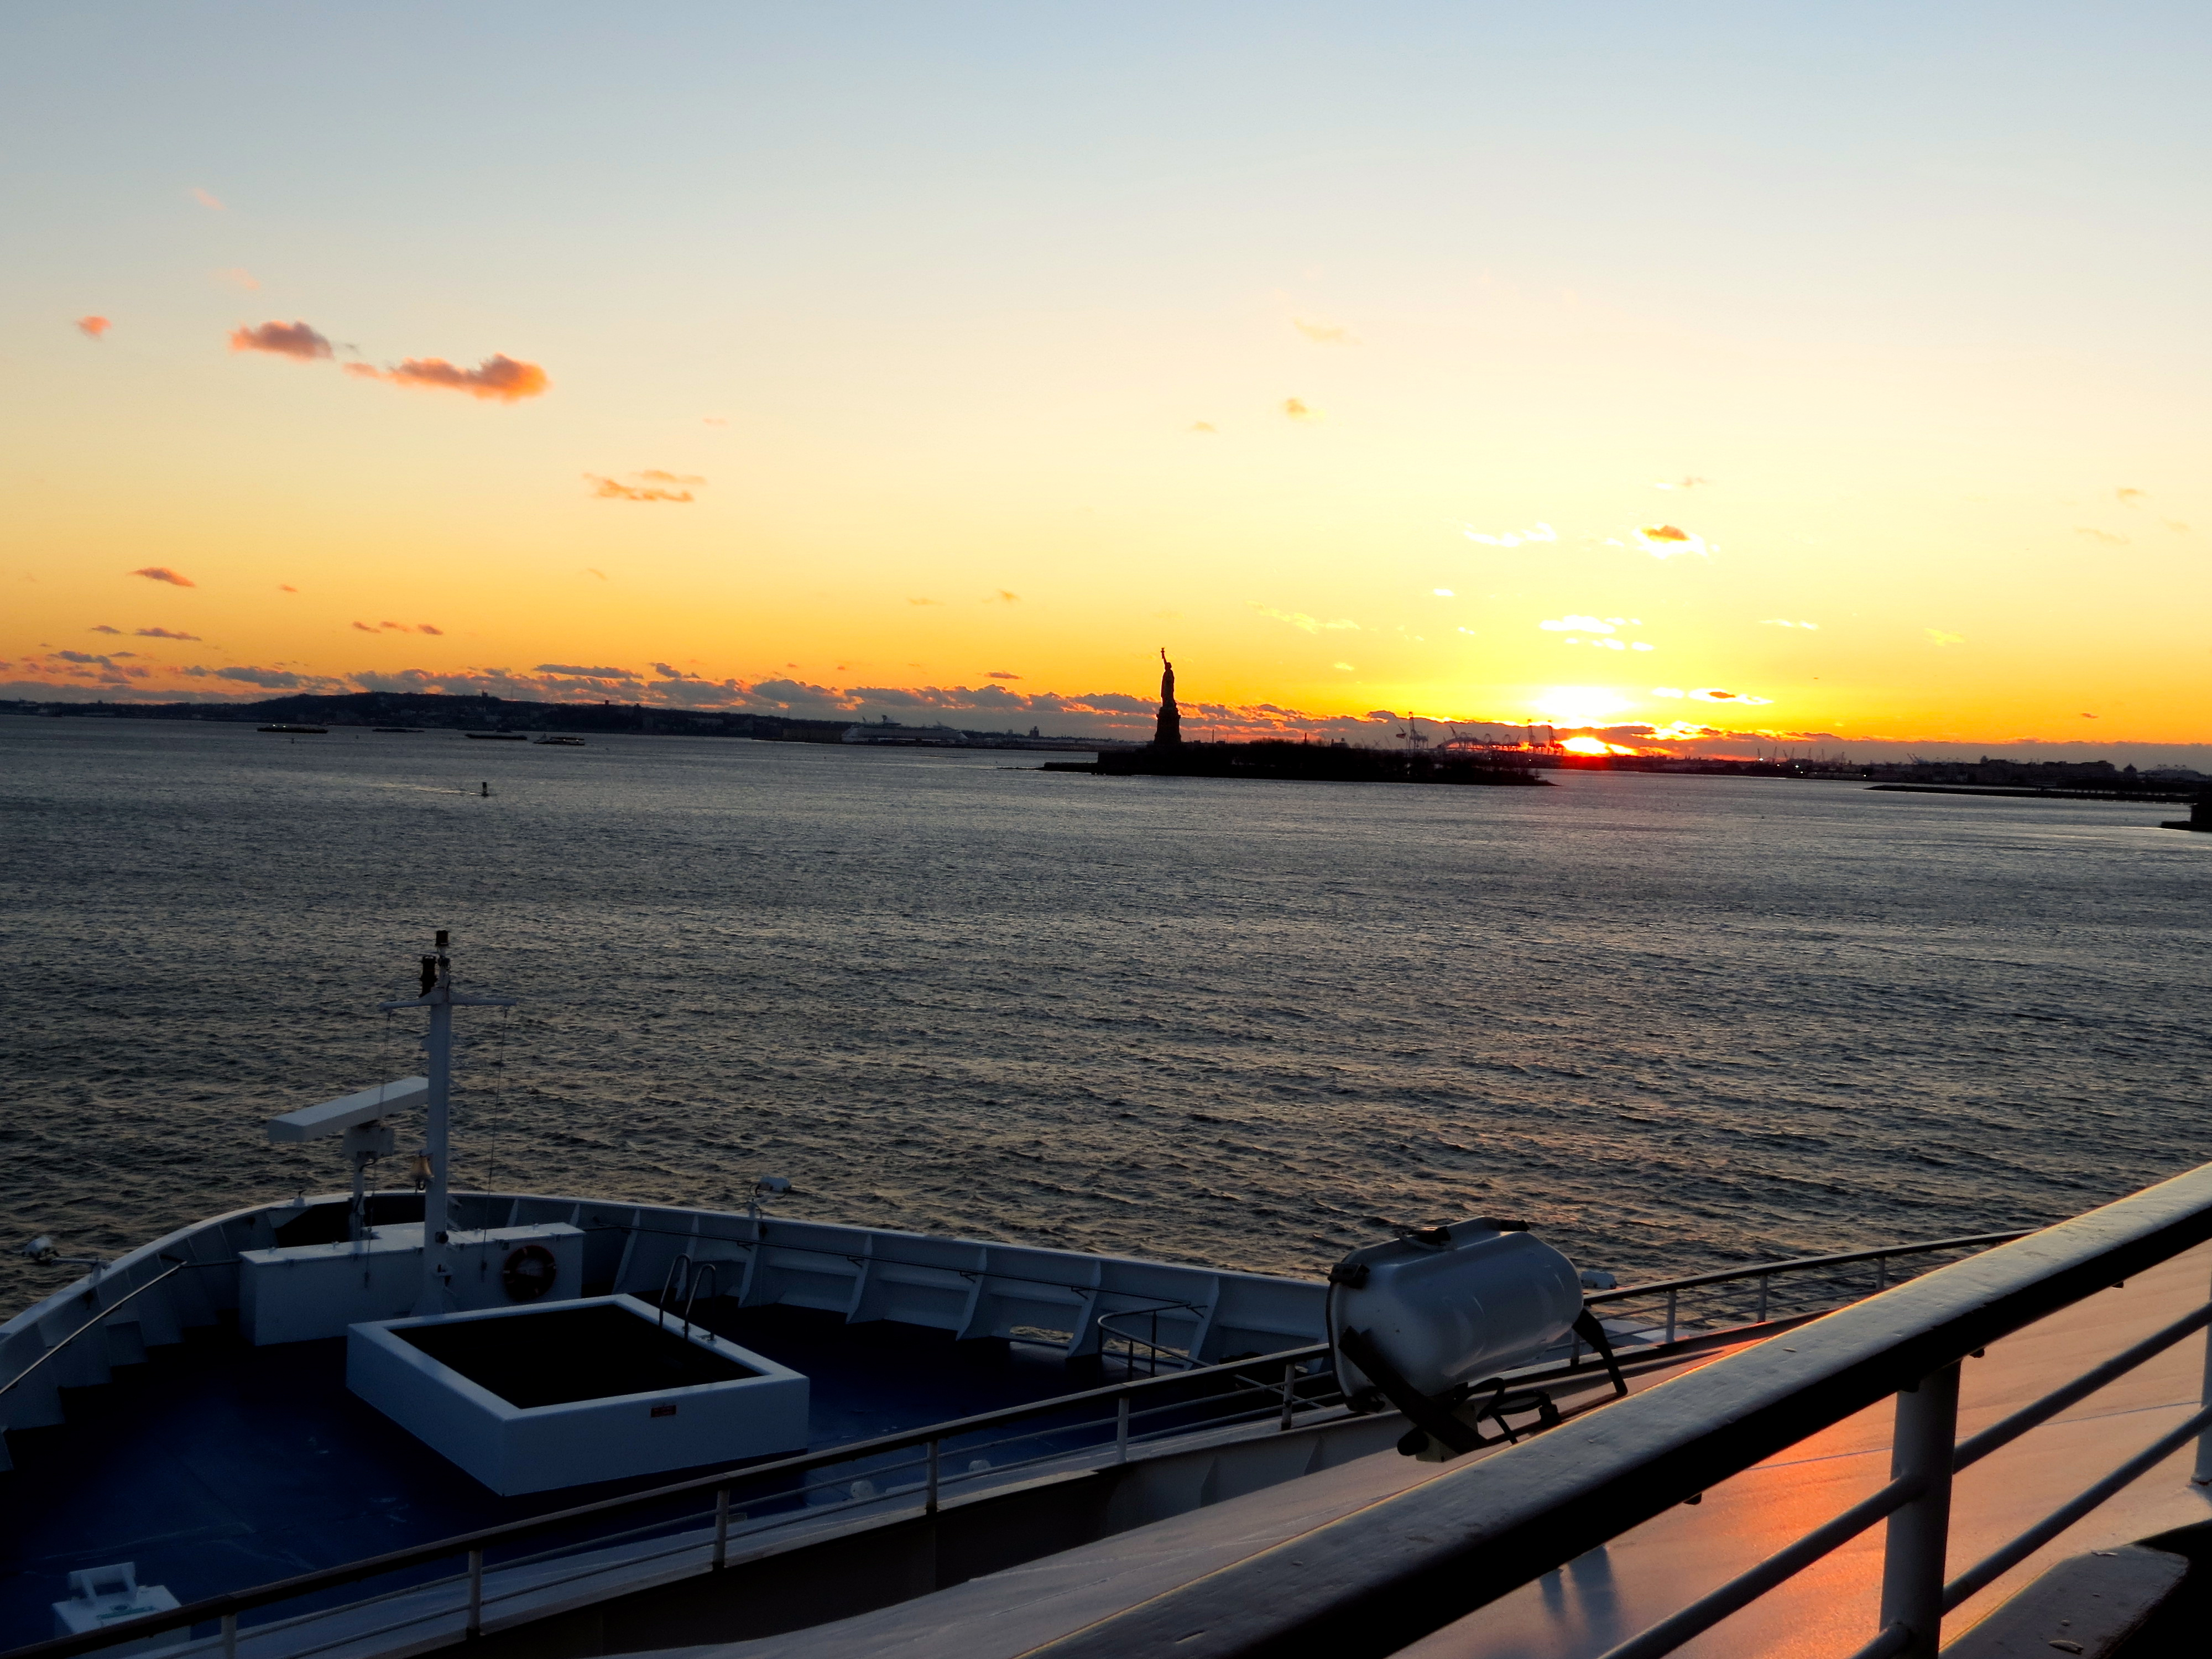 essay on new york city dt coursework help sailing into harbor new york statue of liberty